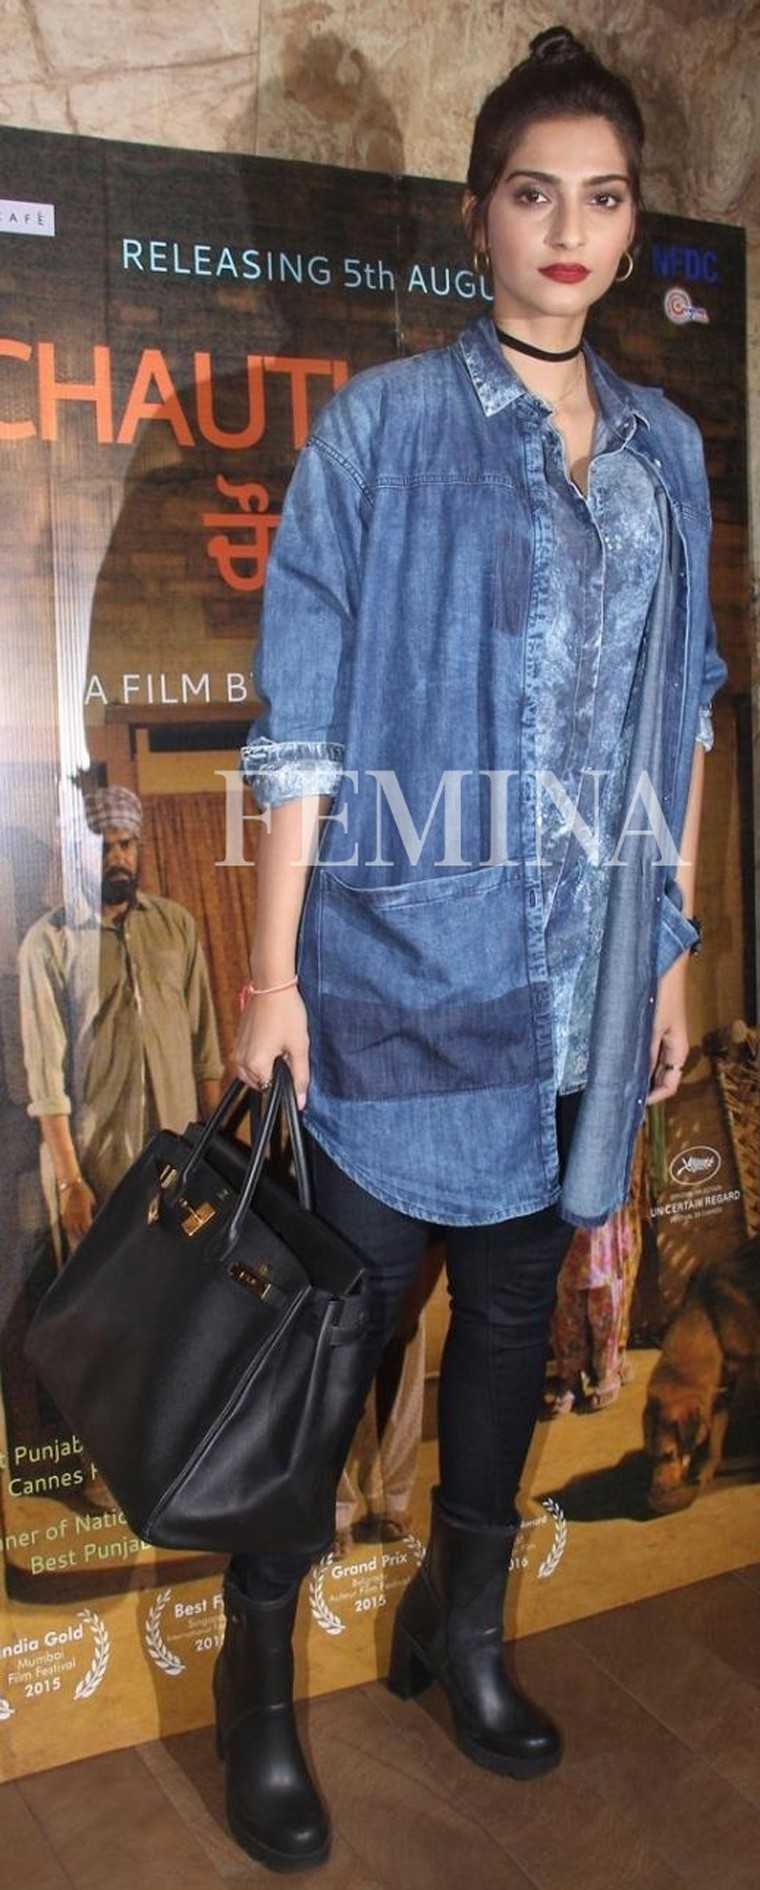 Sonam Kapoor in Bhane:  Sonam decided to go back to the '90s with a cool denim-on-denim look accessorised with a choker.